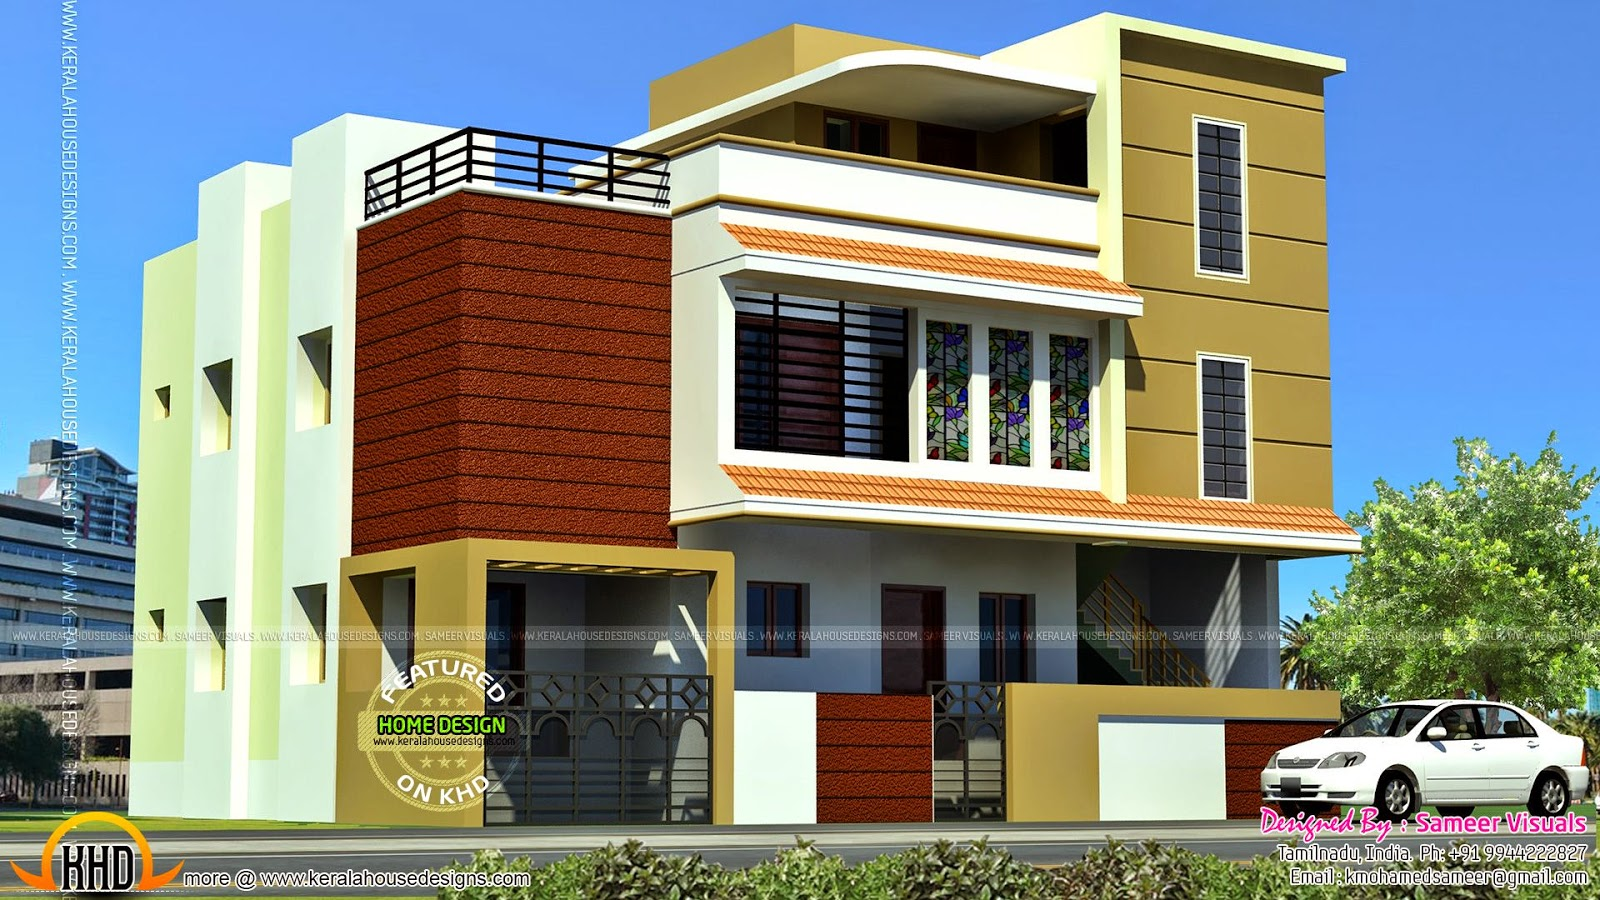 Tamilnadu model house kerala home design and floor plans for Tamilnadu house designs photos